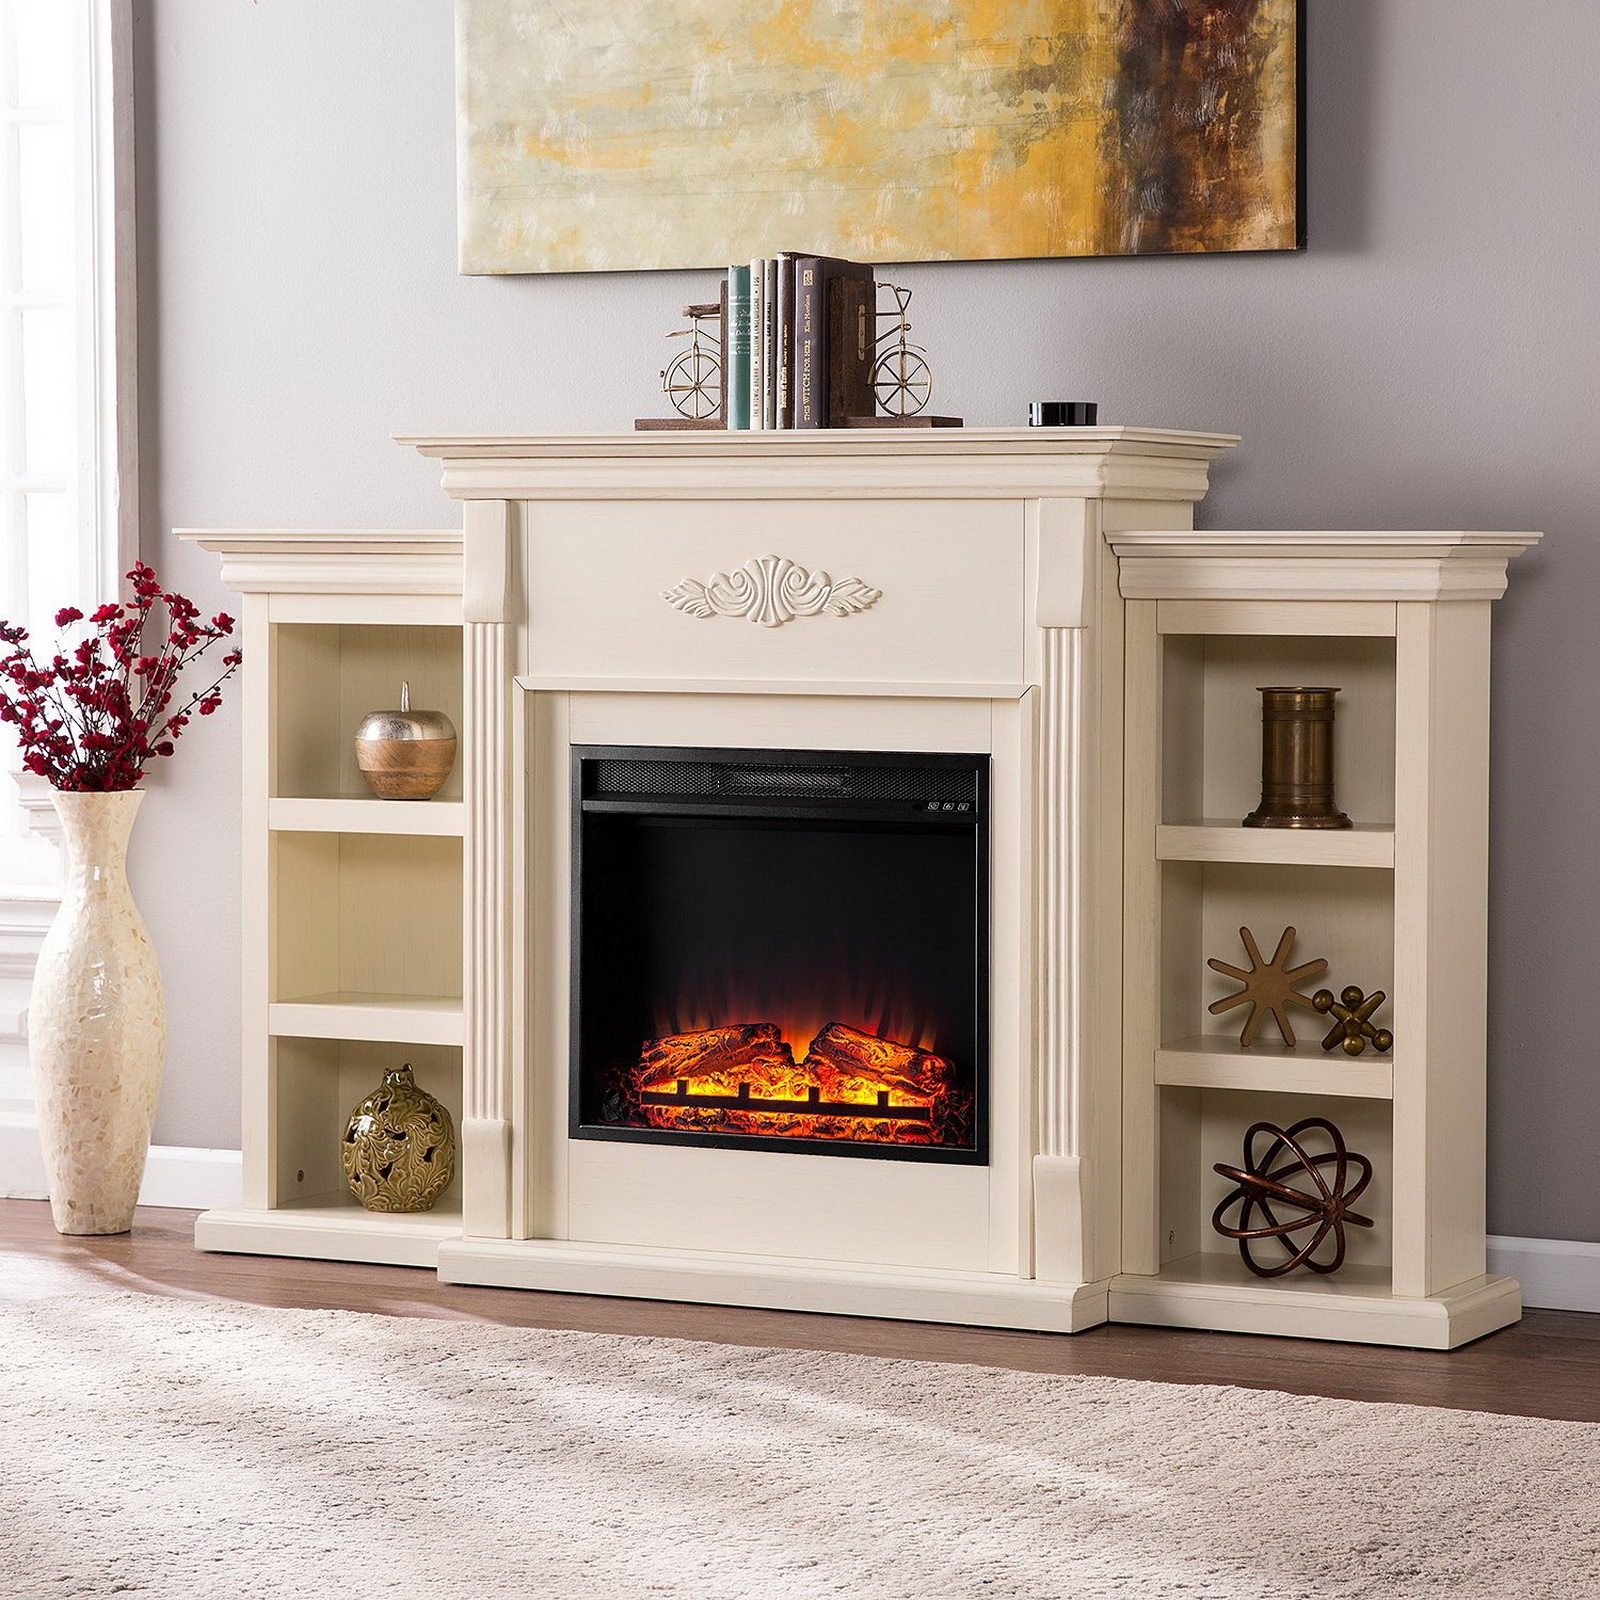 Electric Fireplace Fire Place Mantle Heater Logs With Remote